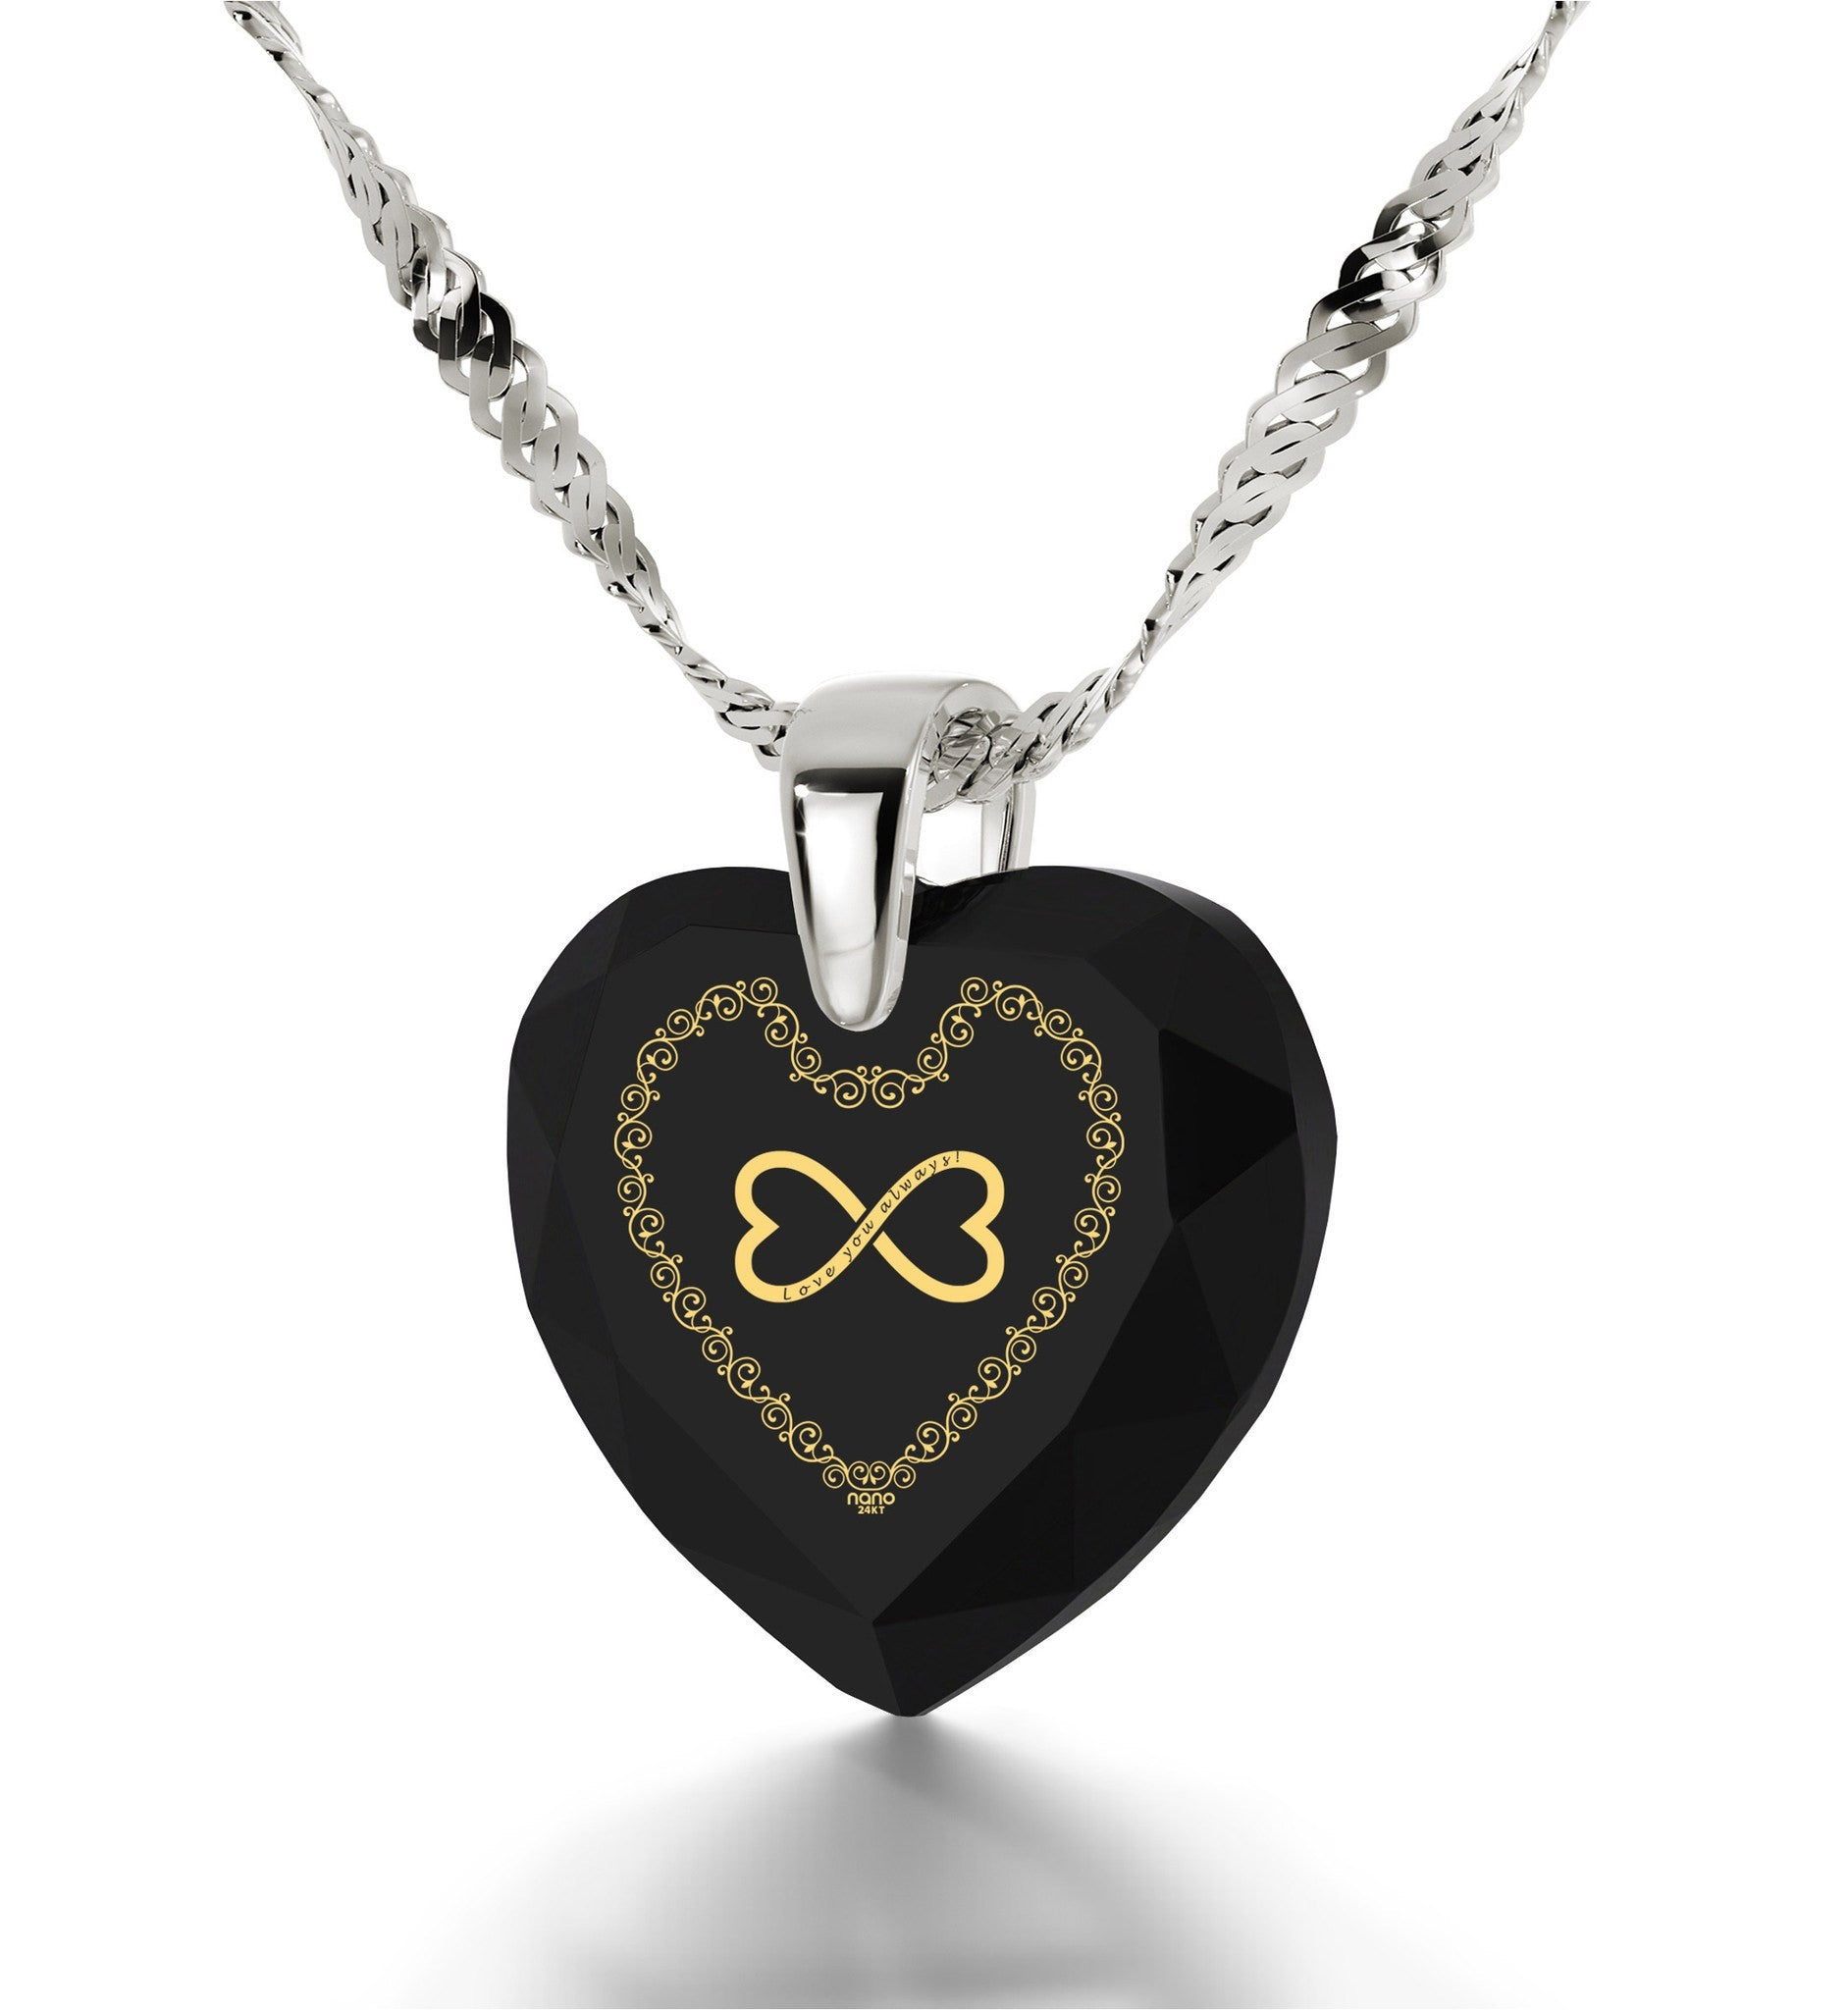 """What to Get Wife for Christmas, Black Heart Stone SilverNecklace, Valentine's Day Gifts for Girlfriend"""